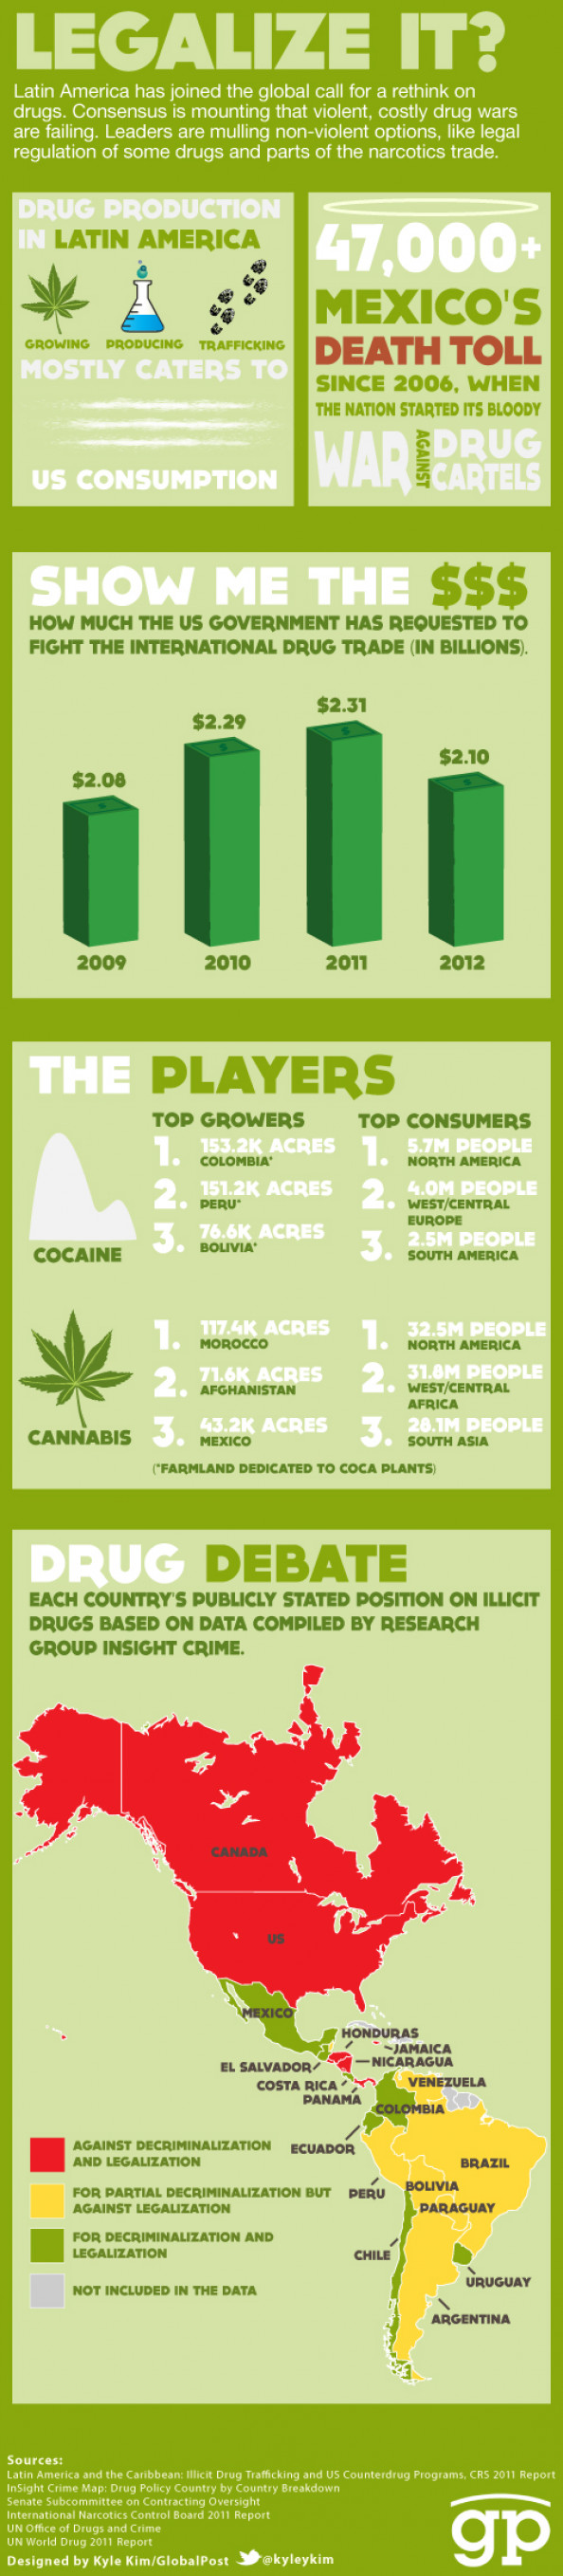 Legalize It? Infographic